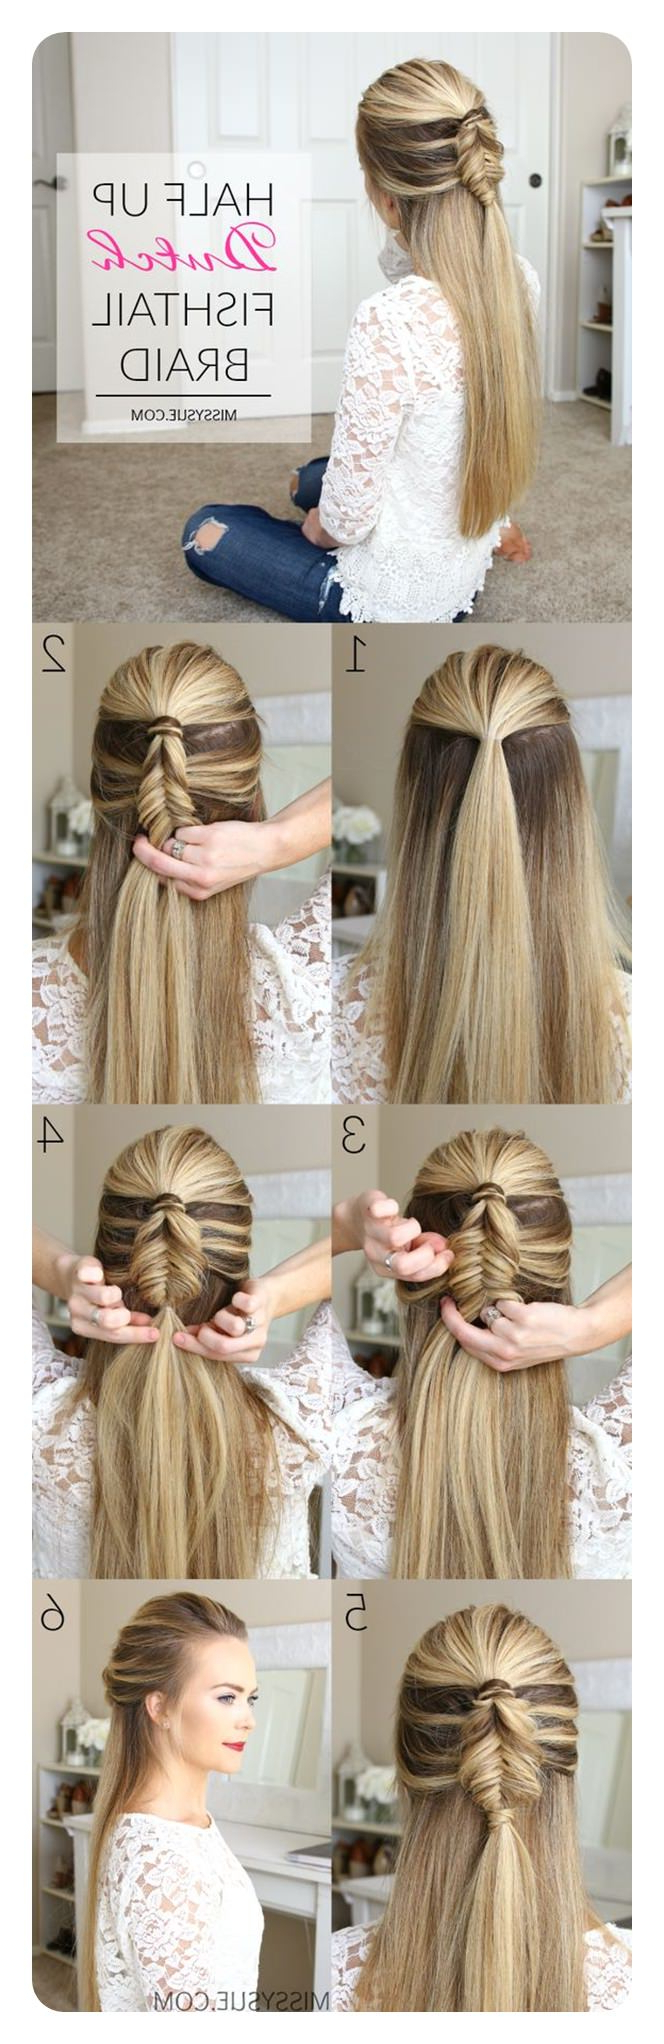 Fashionable Double Fishtail Braids For Prom Regarding 104 Fishtail Braids Hairstyles That Turn Heads (Gallery 20 of 20)